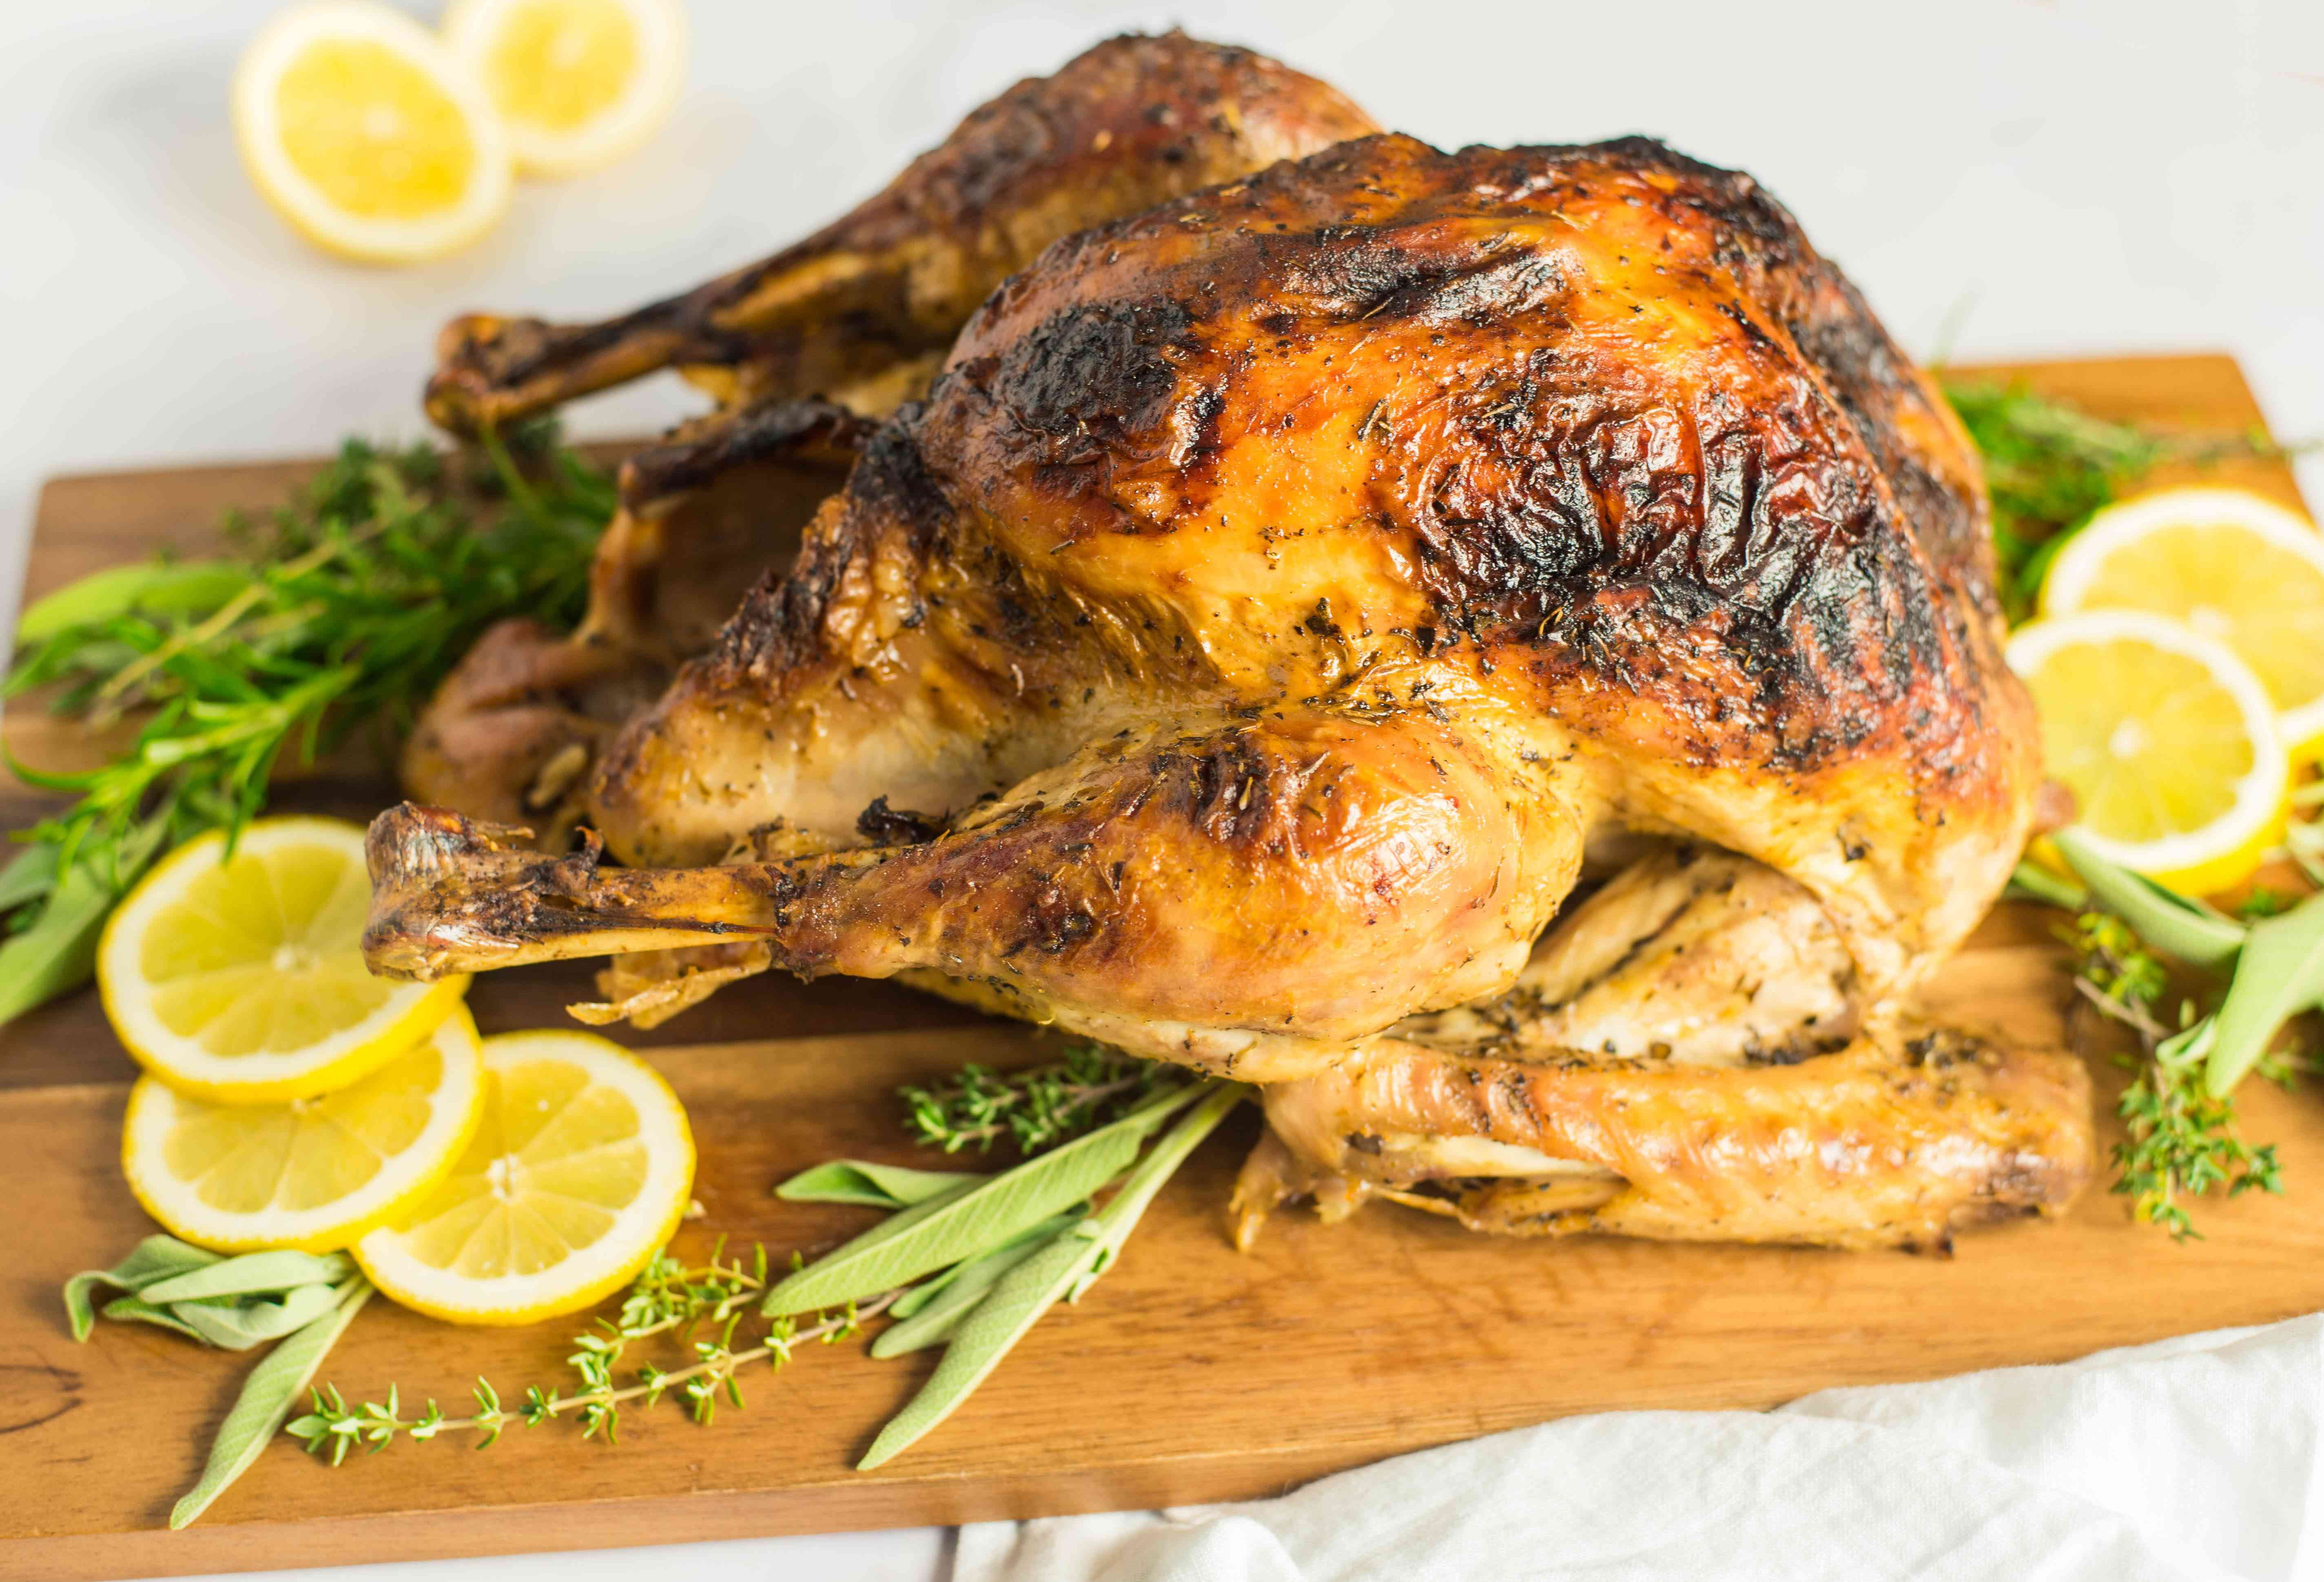 Roasted turkey with herbs and lemon slices